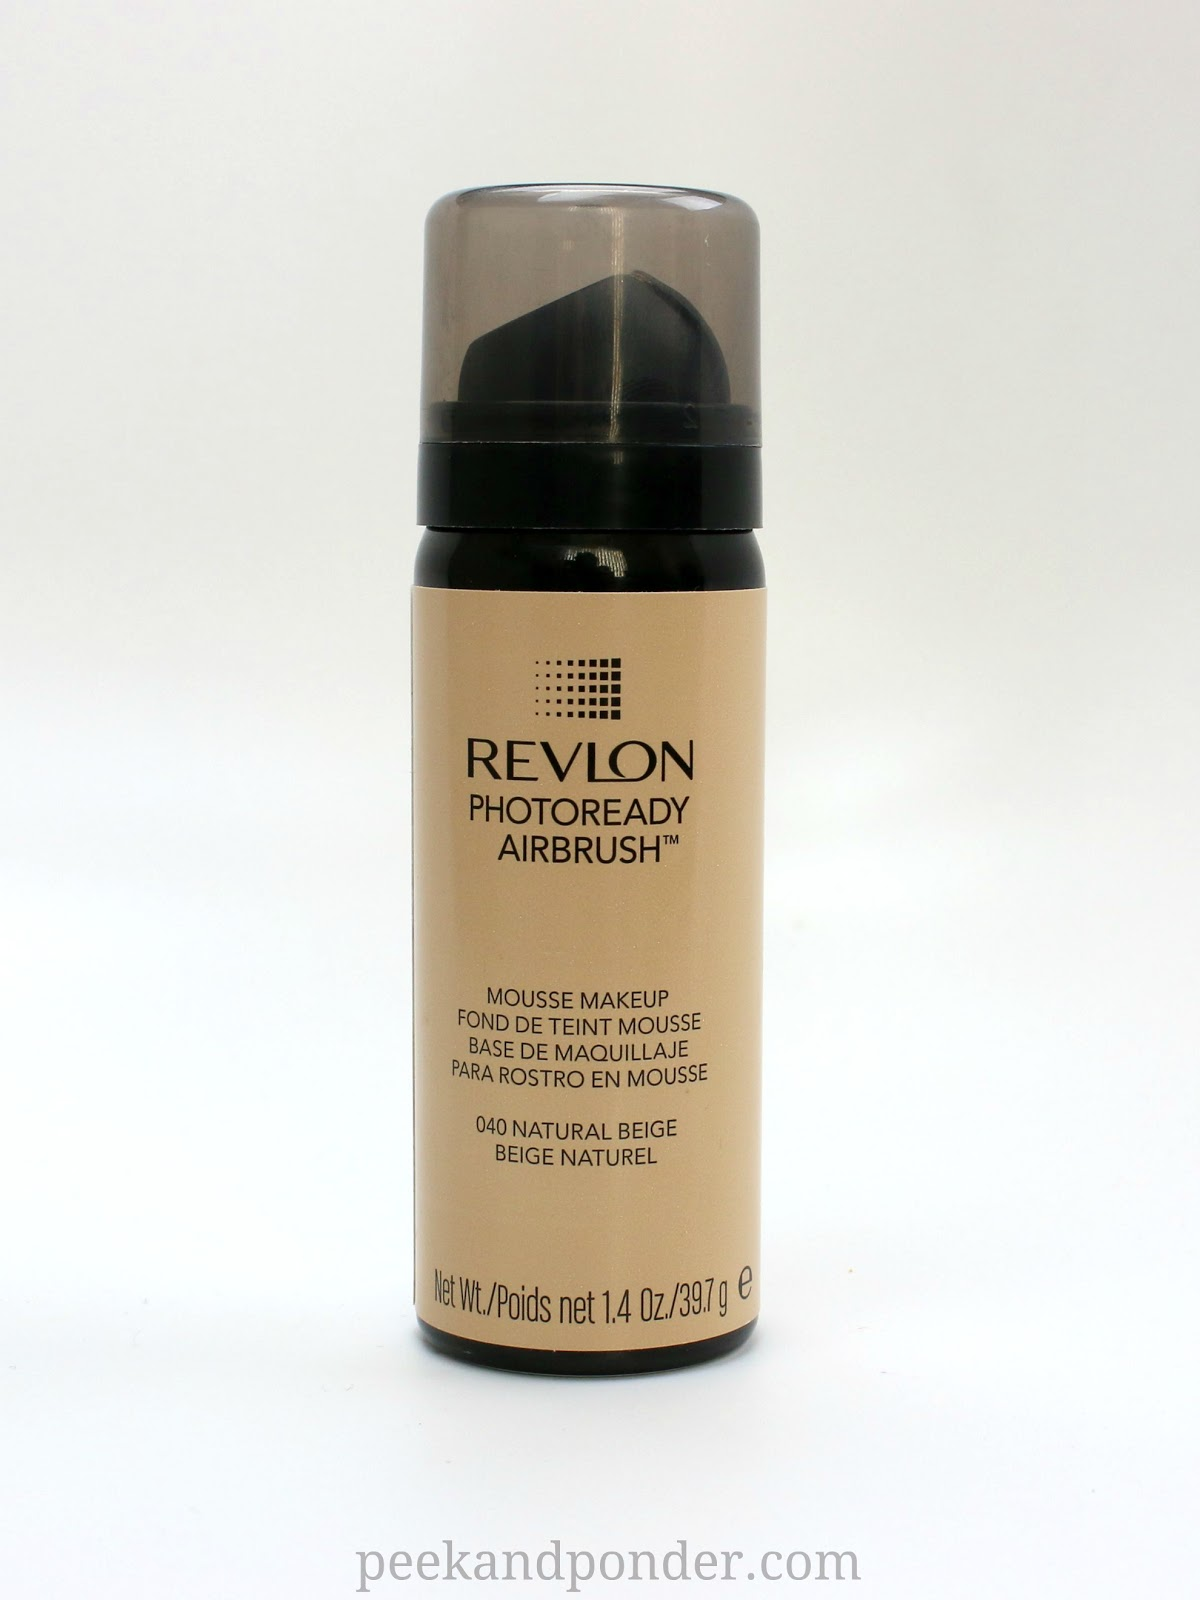 Revlon Photoready Airbrush foundation